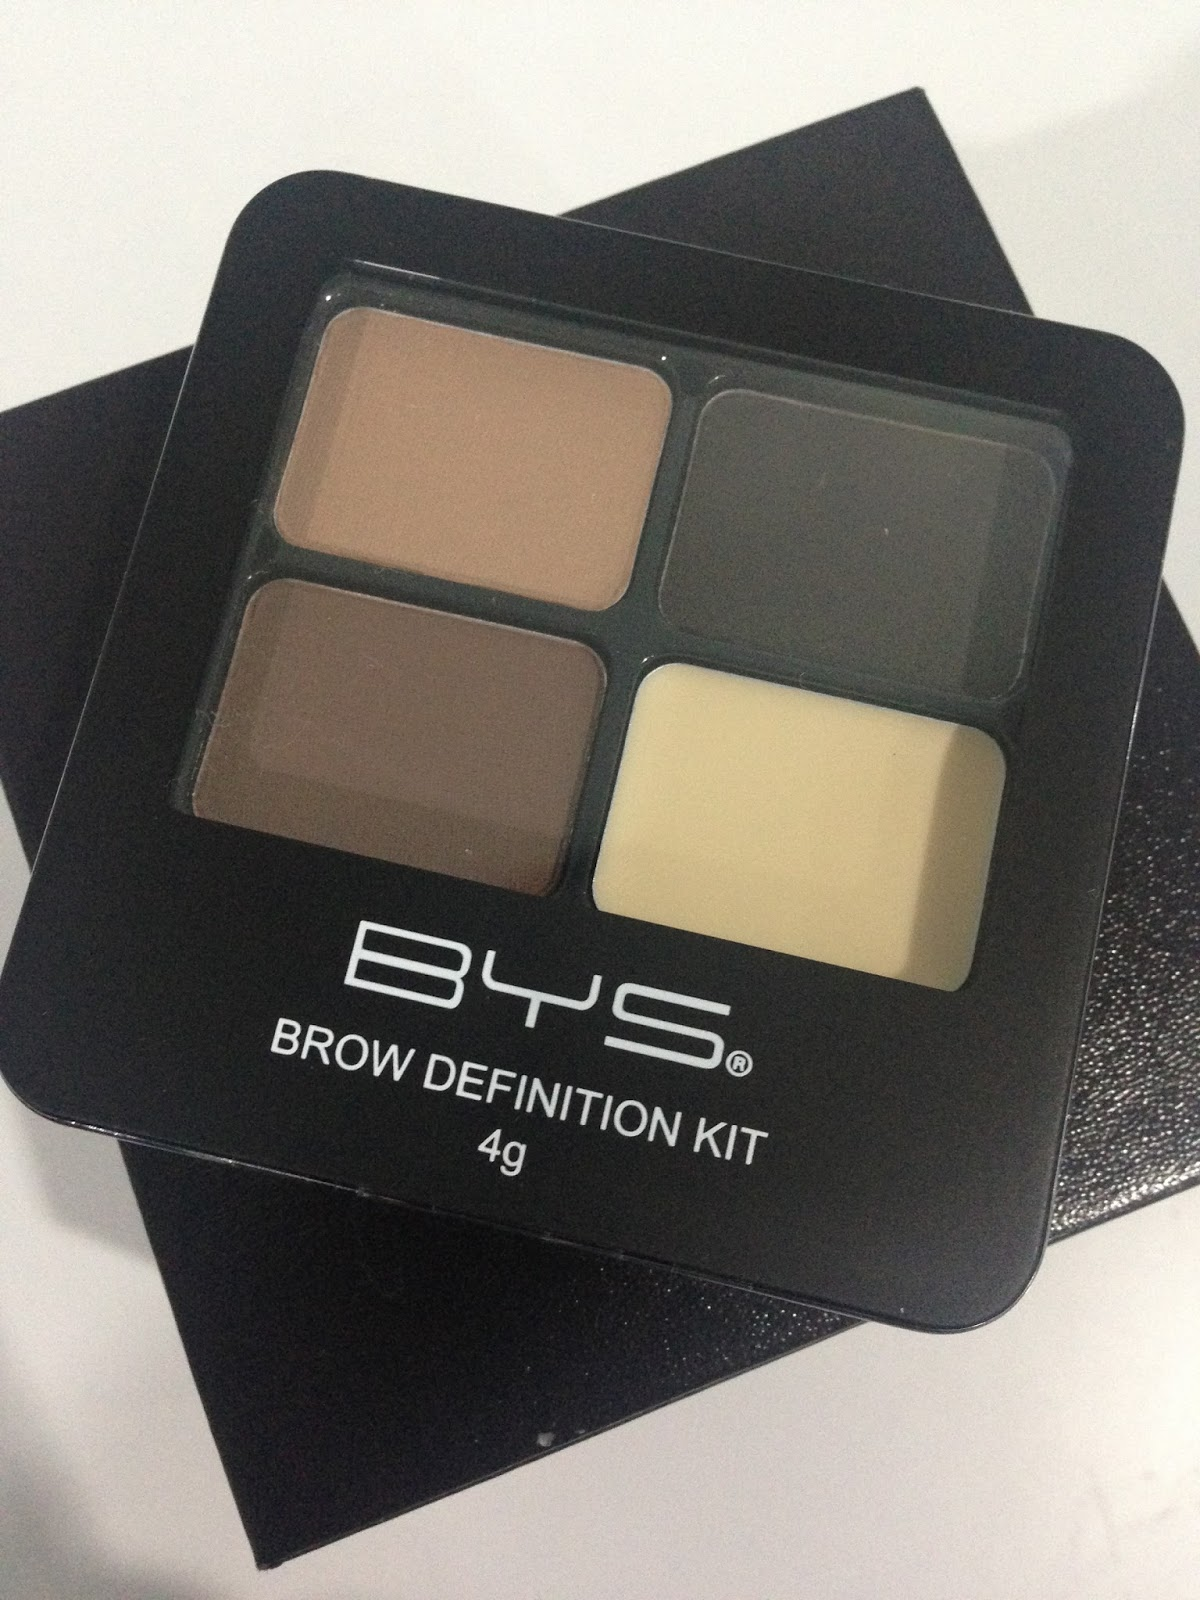 Bys Brow Definition Kit Review Mommy Rockin In Style Beauty And